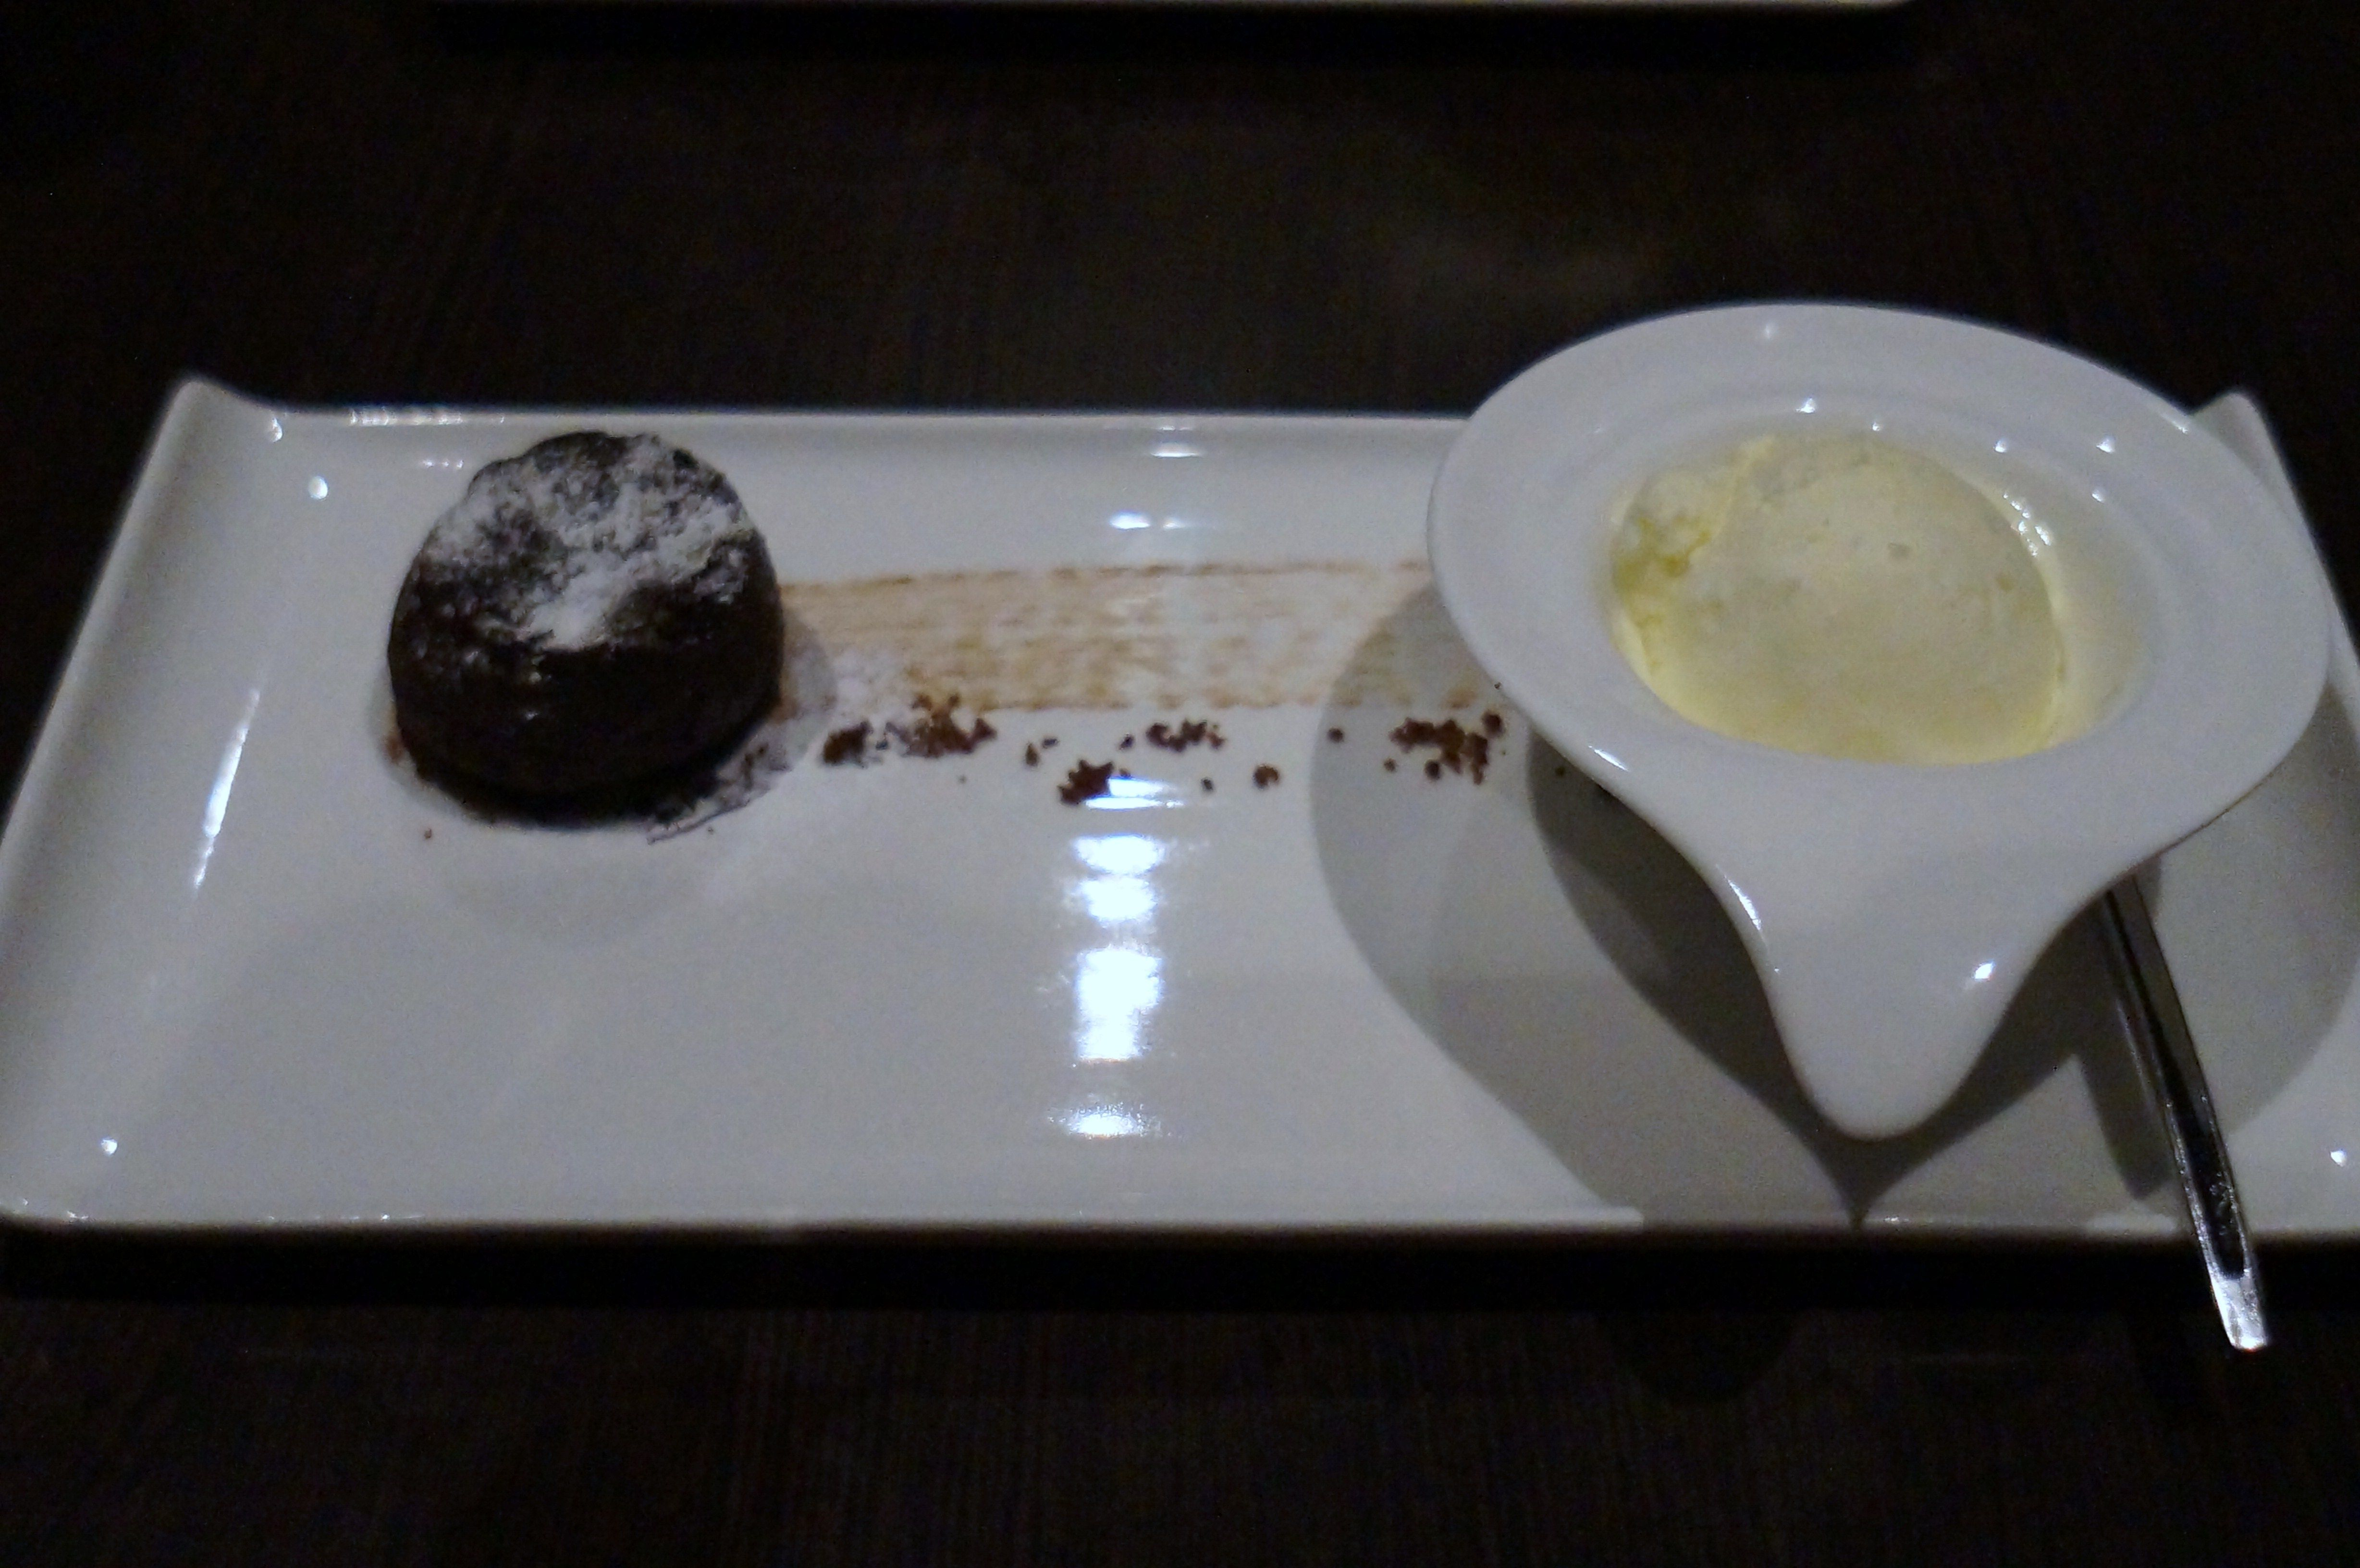 Dozo's freshly baked warm chocolate cake served with vanilla ice cream - http://www.gucciwealth.com/dozos-freshly-baked-warm-chocolate-cake-served-with-vanilla-ice-cream/